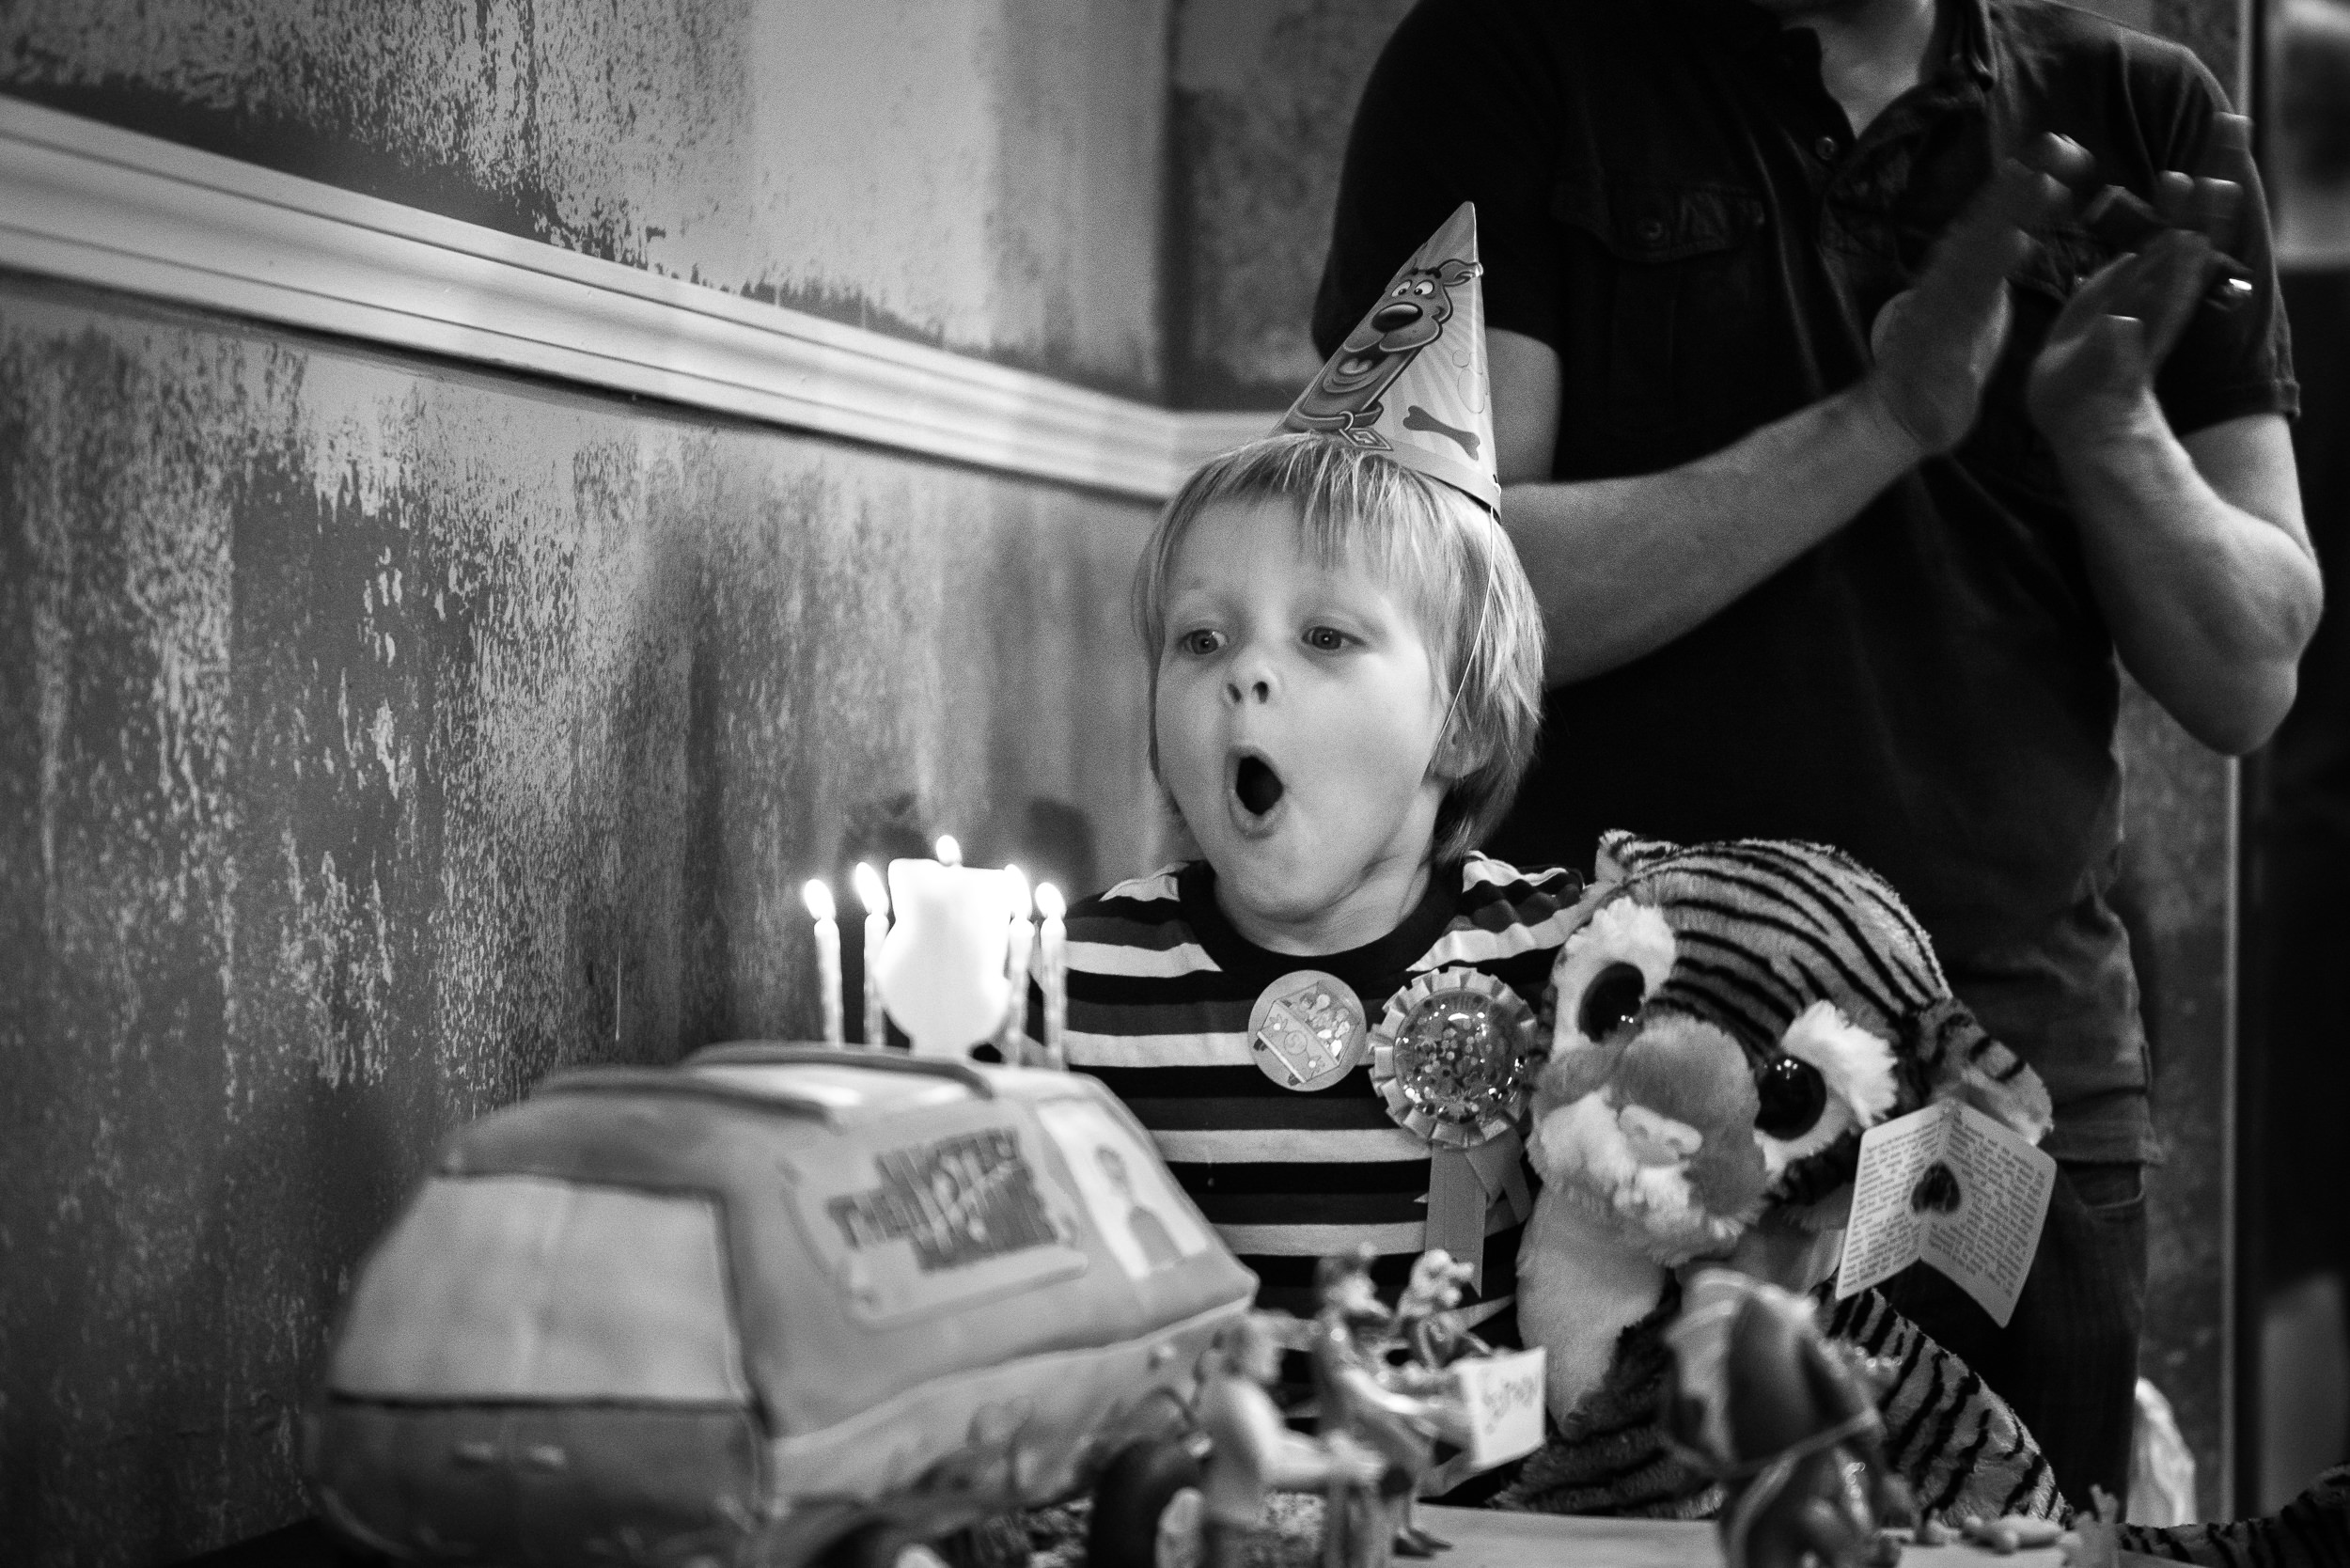 Black and White Documentary Family Photography in Denver, Colorado - birthday boy blowing out candles on cake at party